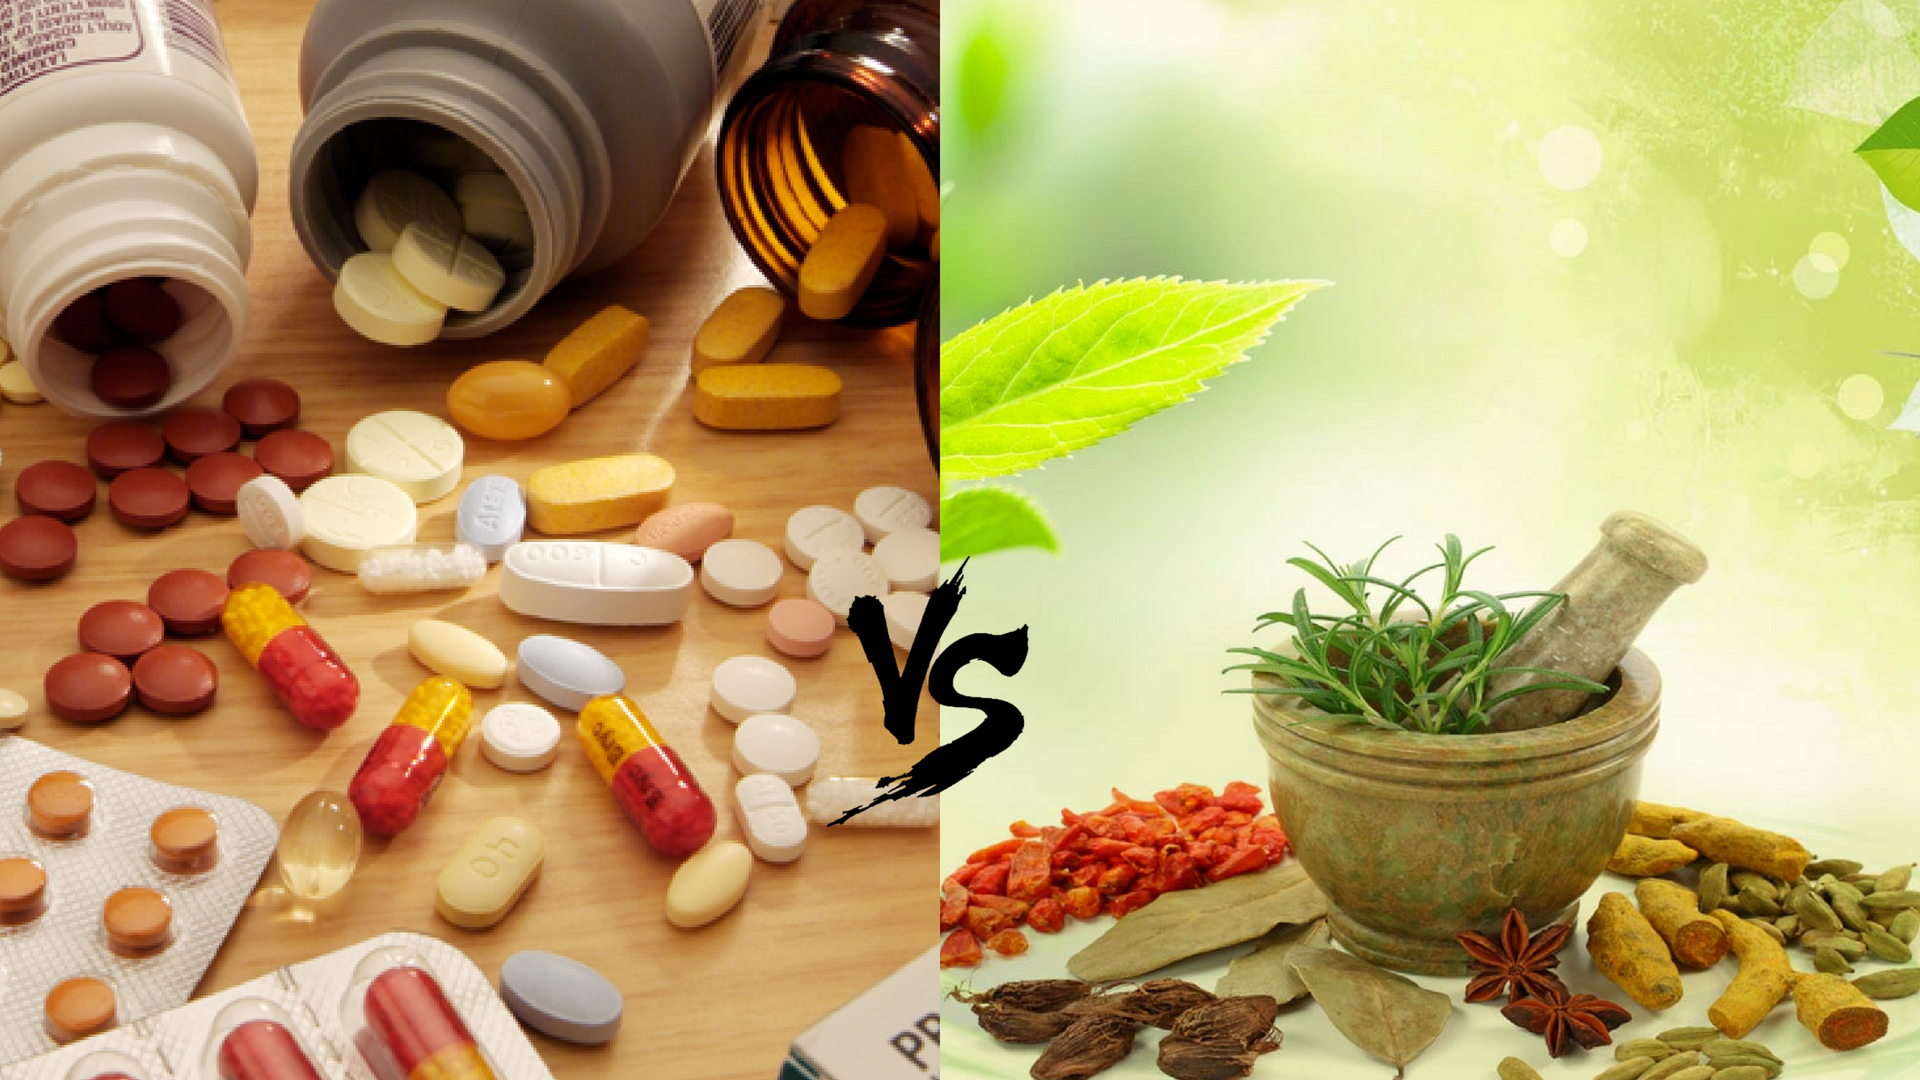 आयुर्वेद या एलोपैथी क्या है बेहतर,Which Is Better Ayurveda Or Allopathy In Hindi,healthlekh.com, ayurveda behtar hai ya allopathy,Ayurvedic Medicine inhindi